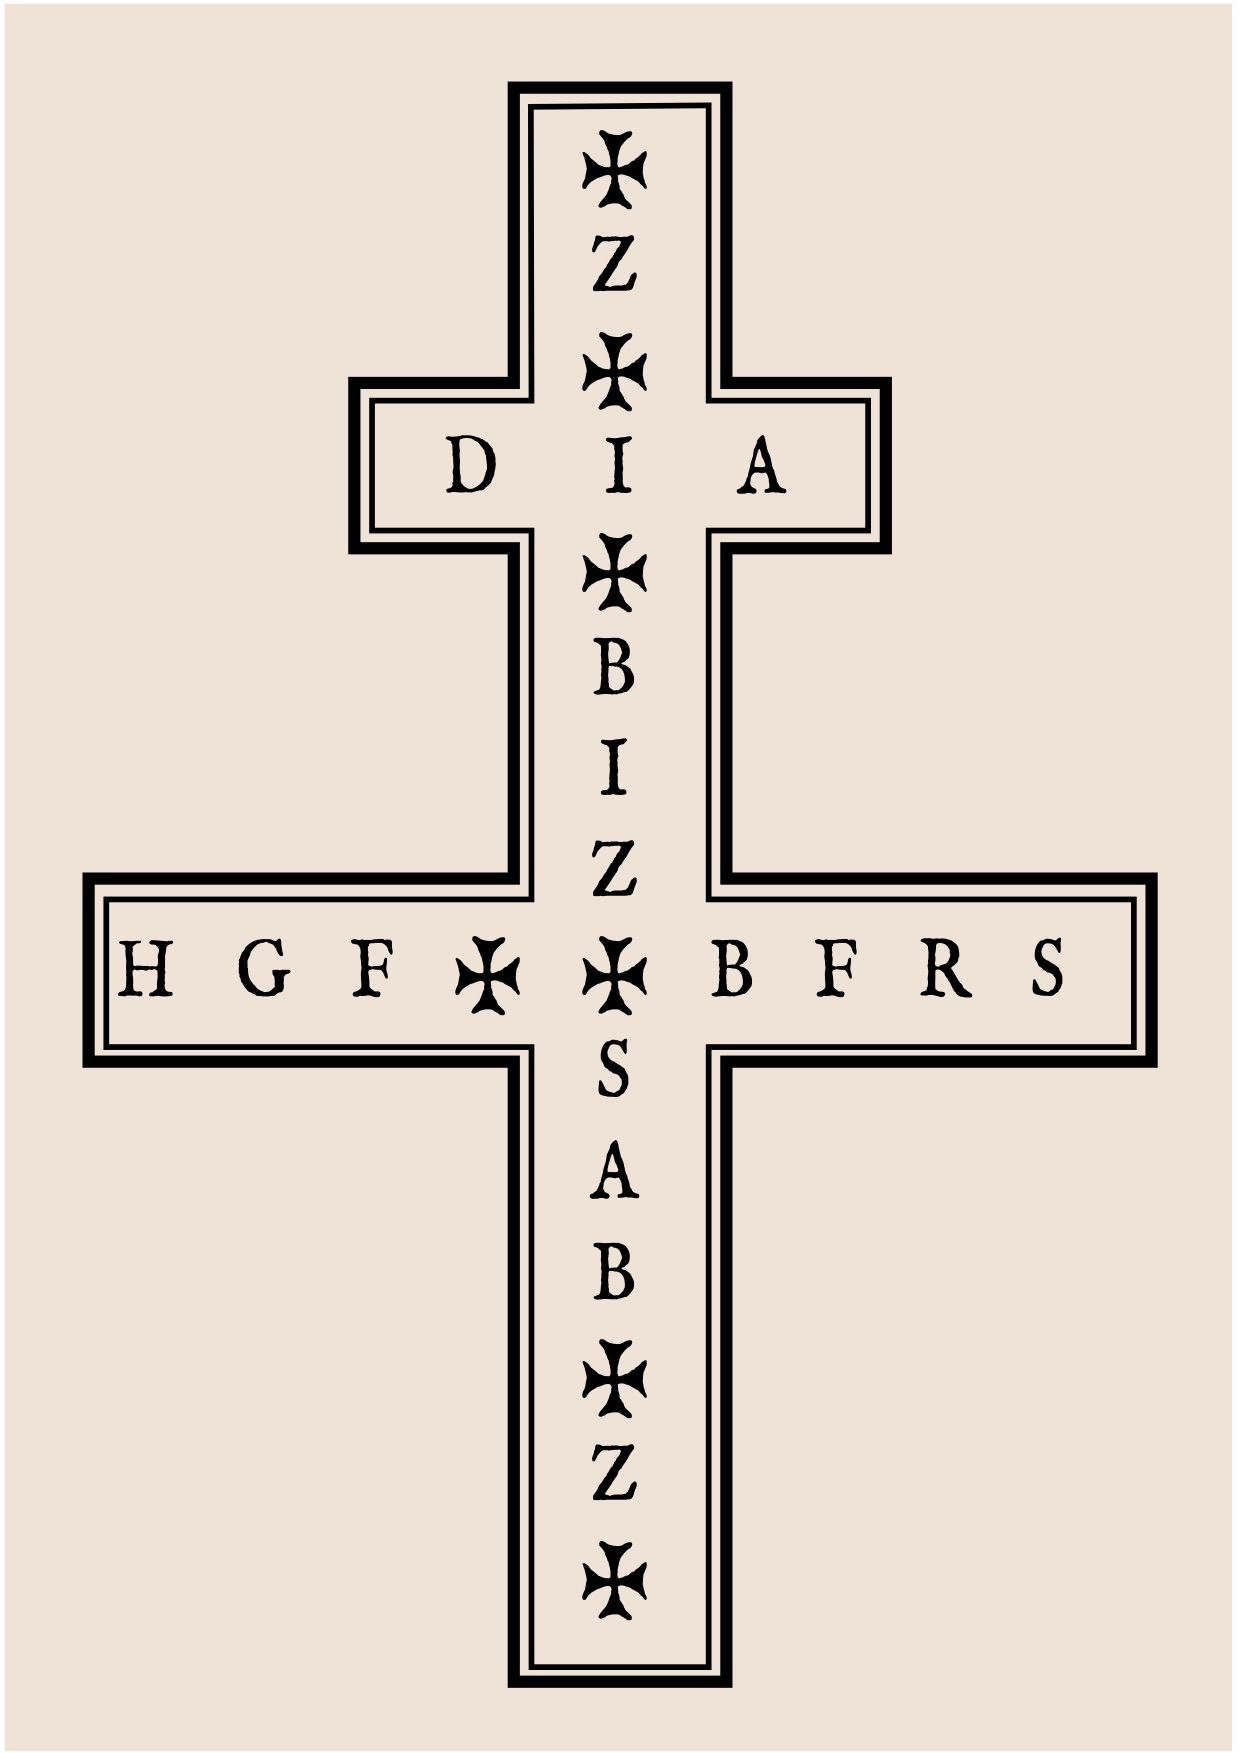 A 'Plague Cross' with the initals of prayers to be said as protection against pestilence